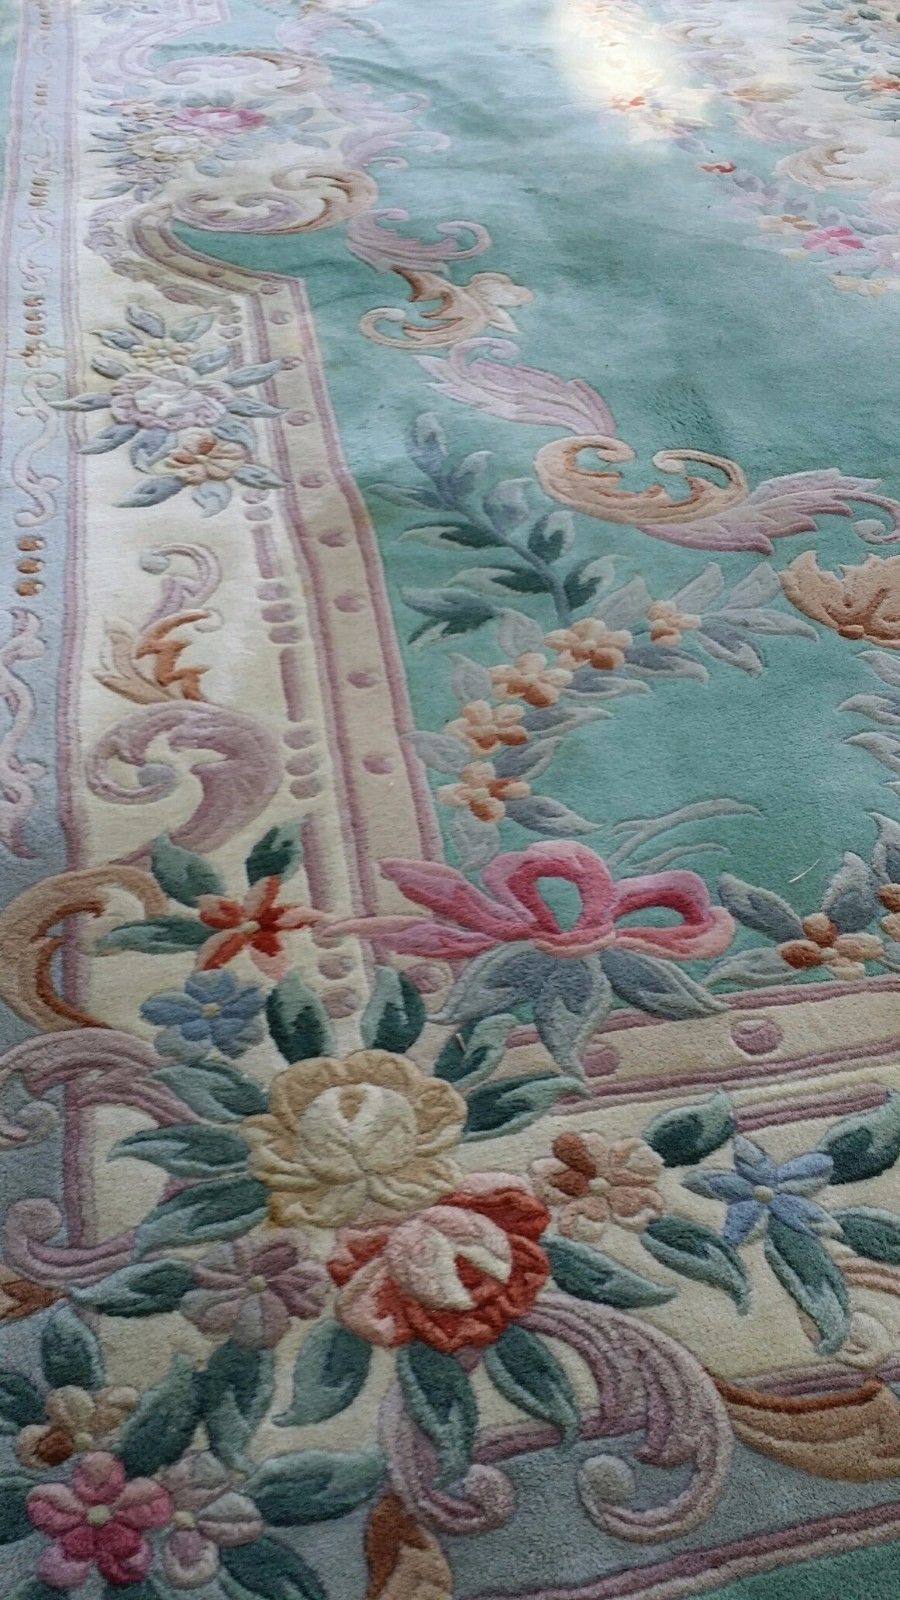 Chinese Aubusson Hand Knotted Oriental Rug 8 11x11 9 Rugs On Carpet Shabby Chic Rug Victorian Rugs